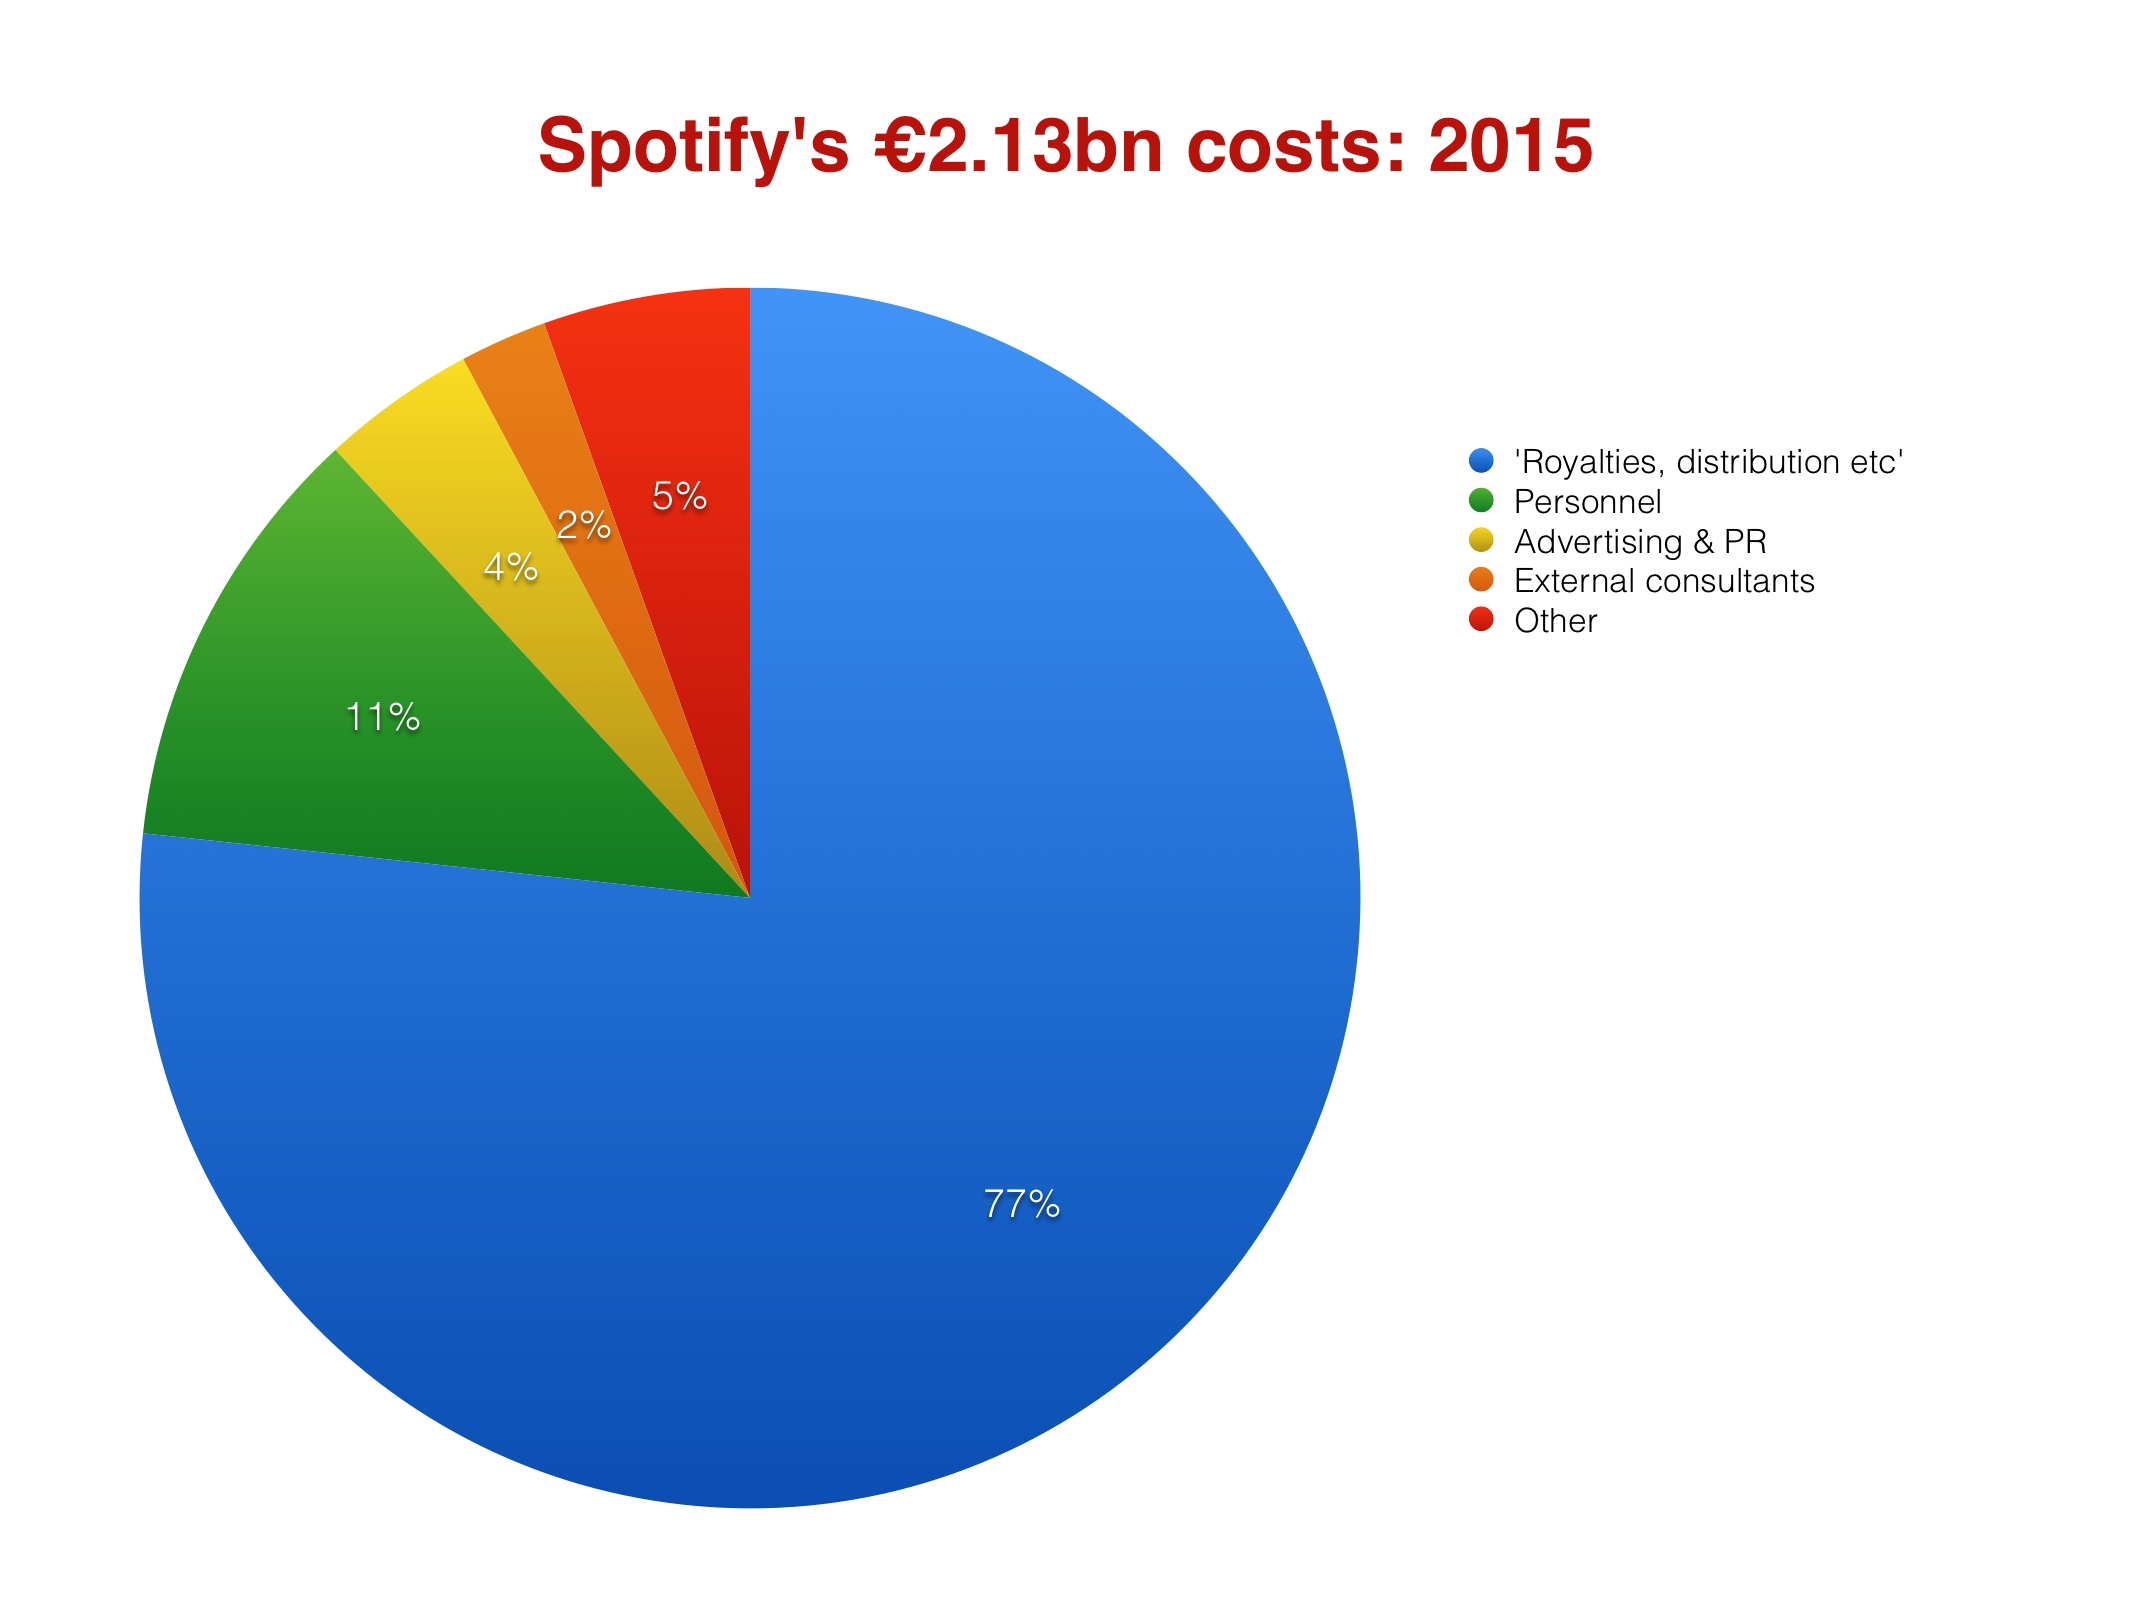 Spotifycosts